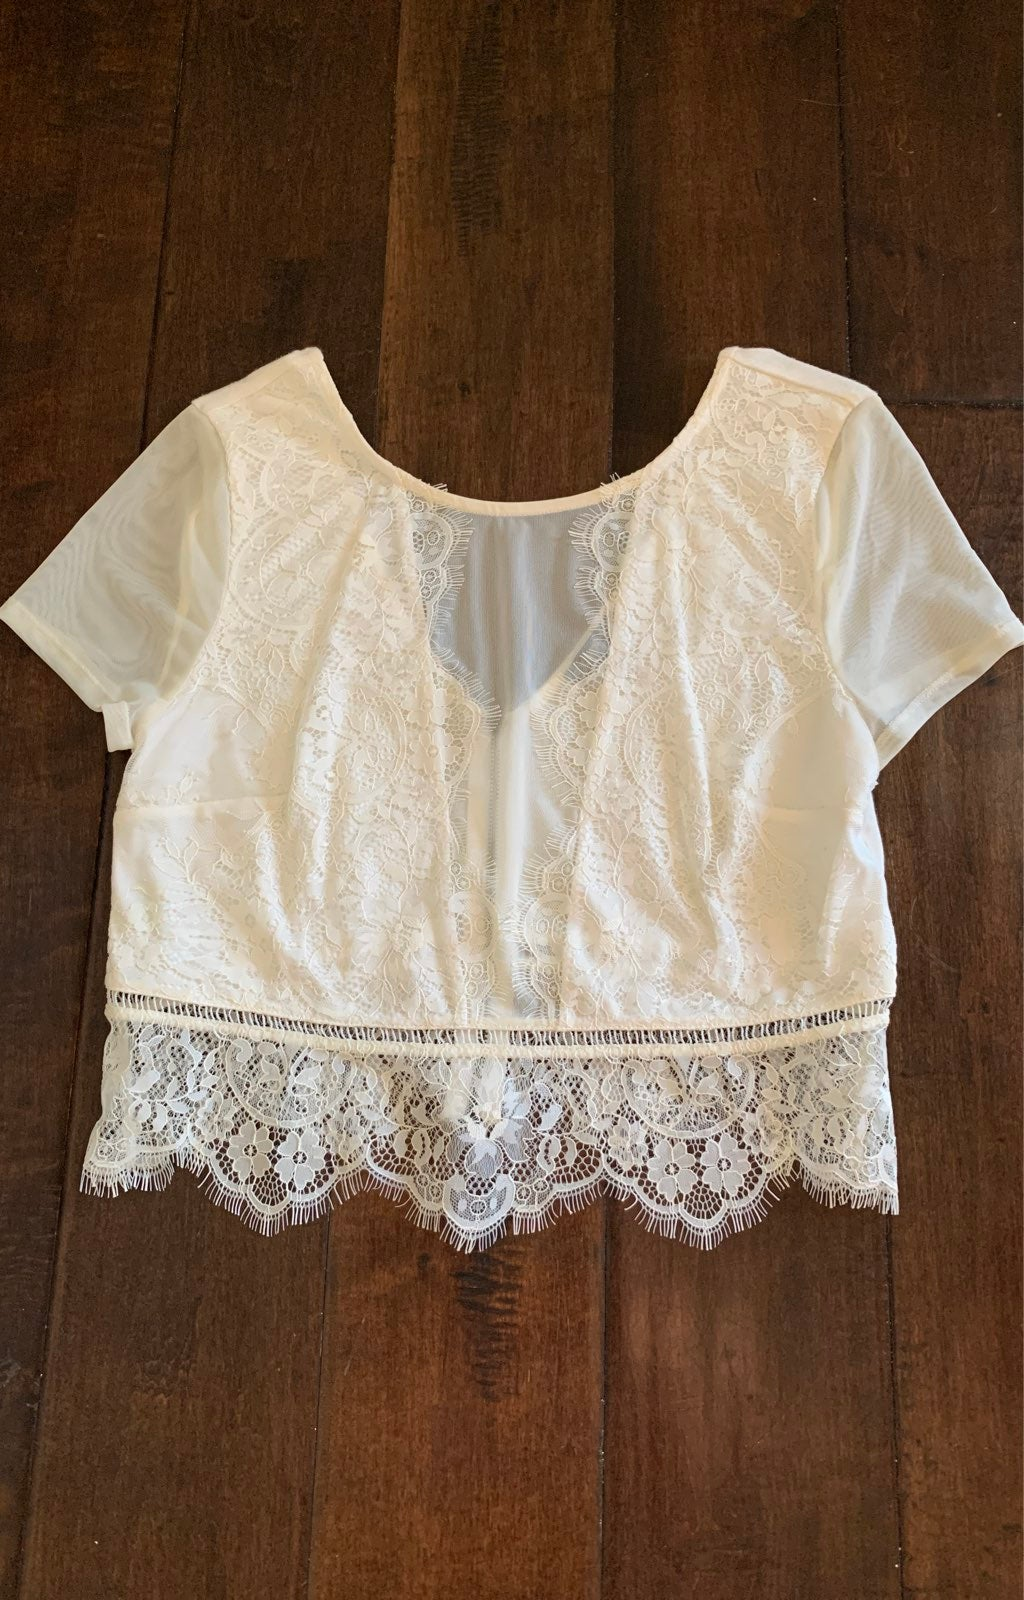 Express mesh and lace crop top